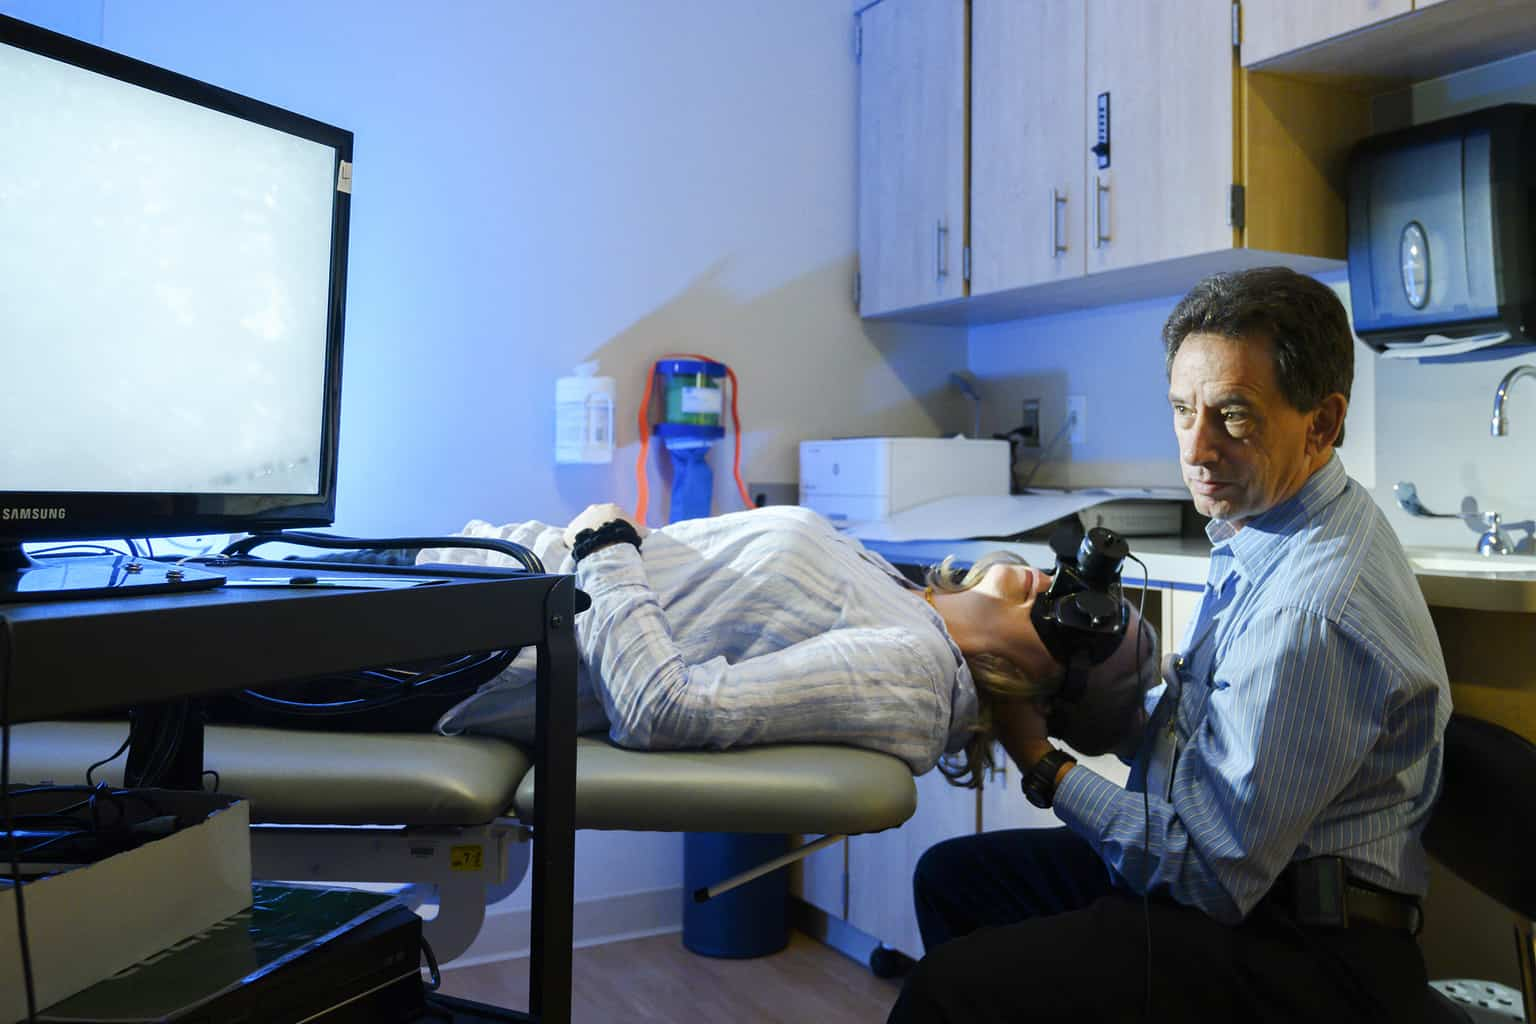 physical therapist with reclining patient in vestibular rehabilitation clinic room